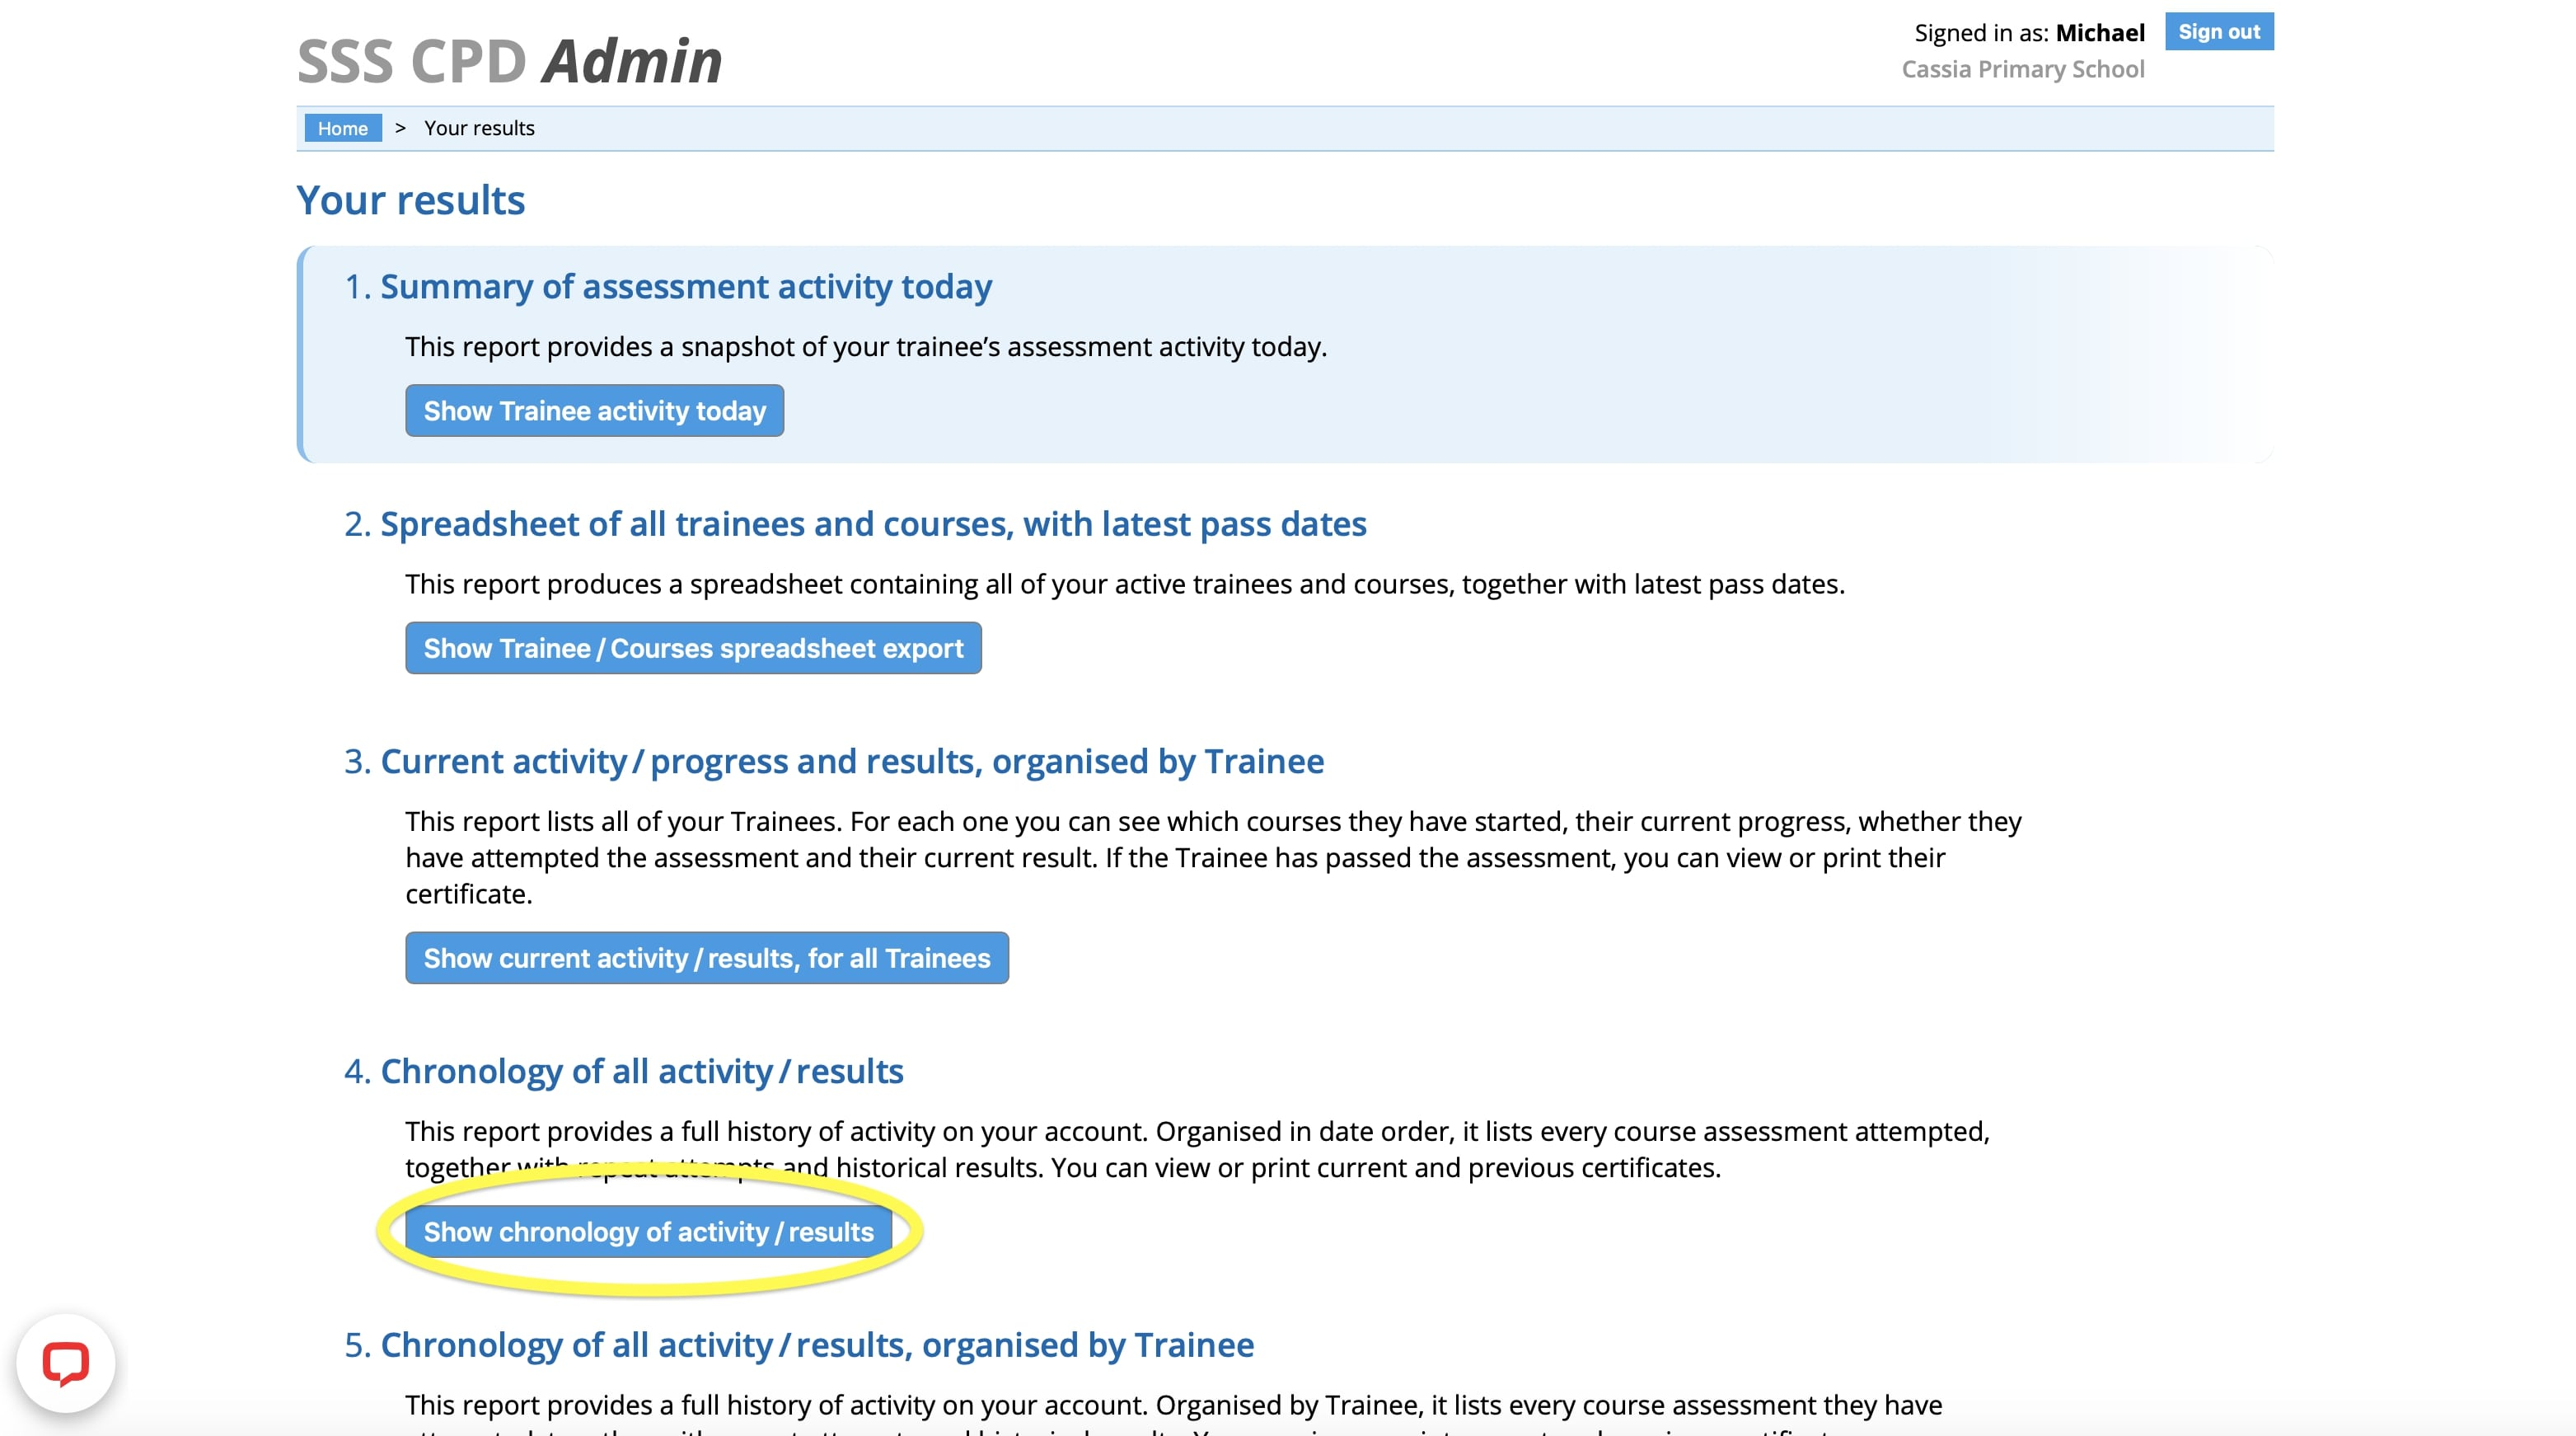 Admin Dashboard - safeguarding training show chronological results